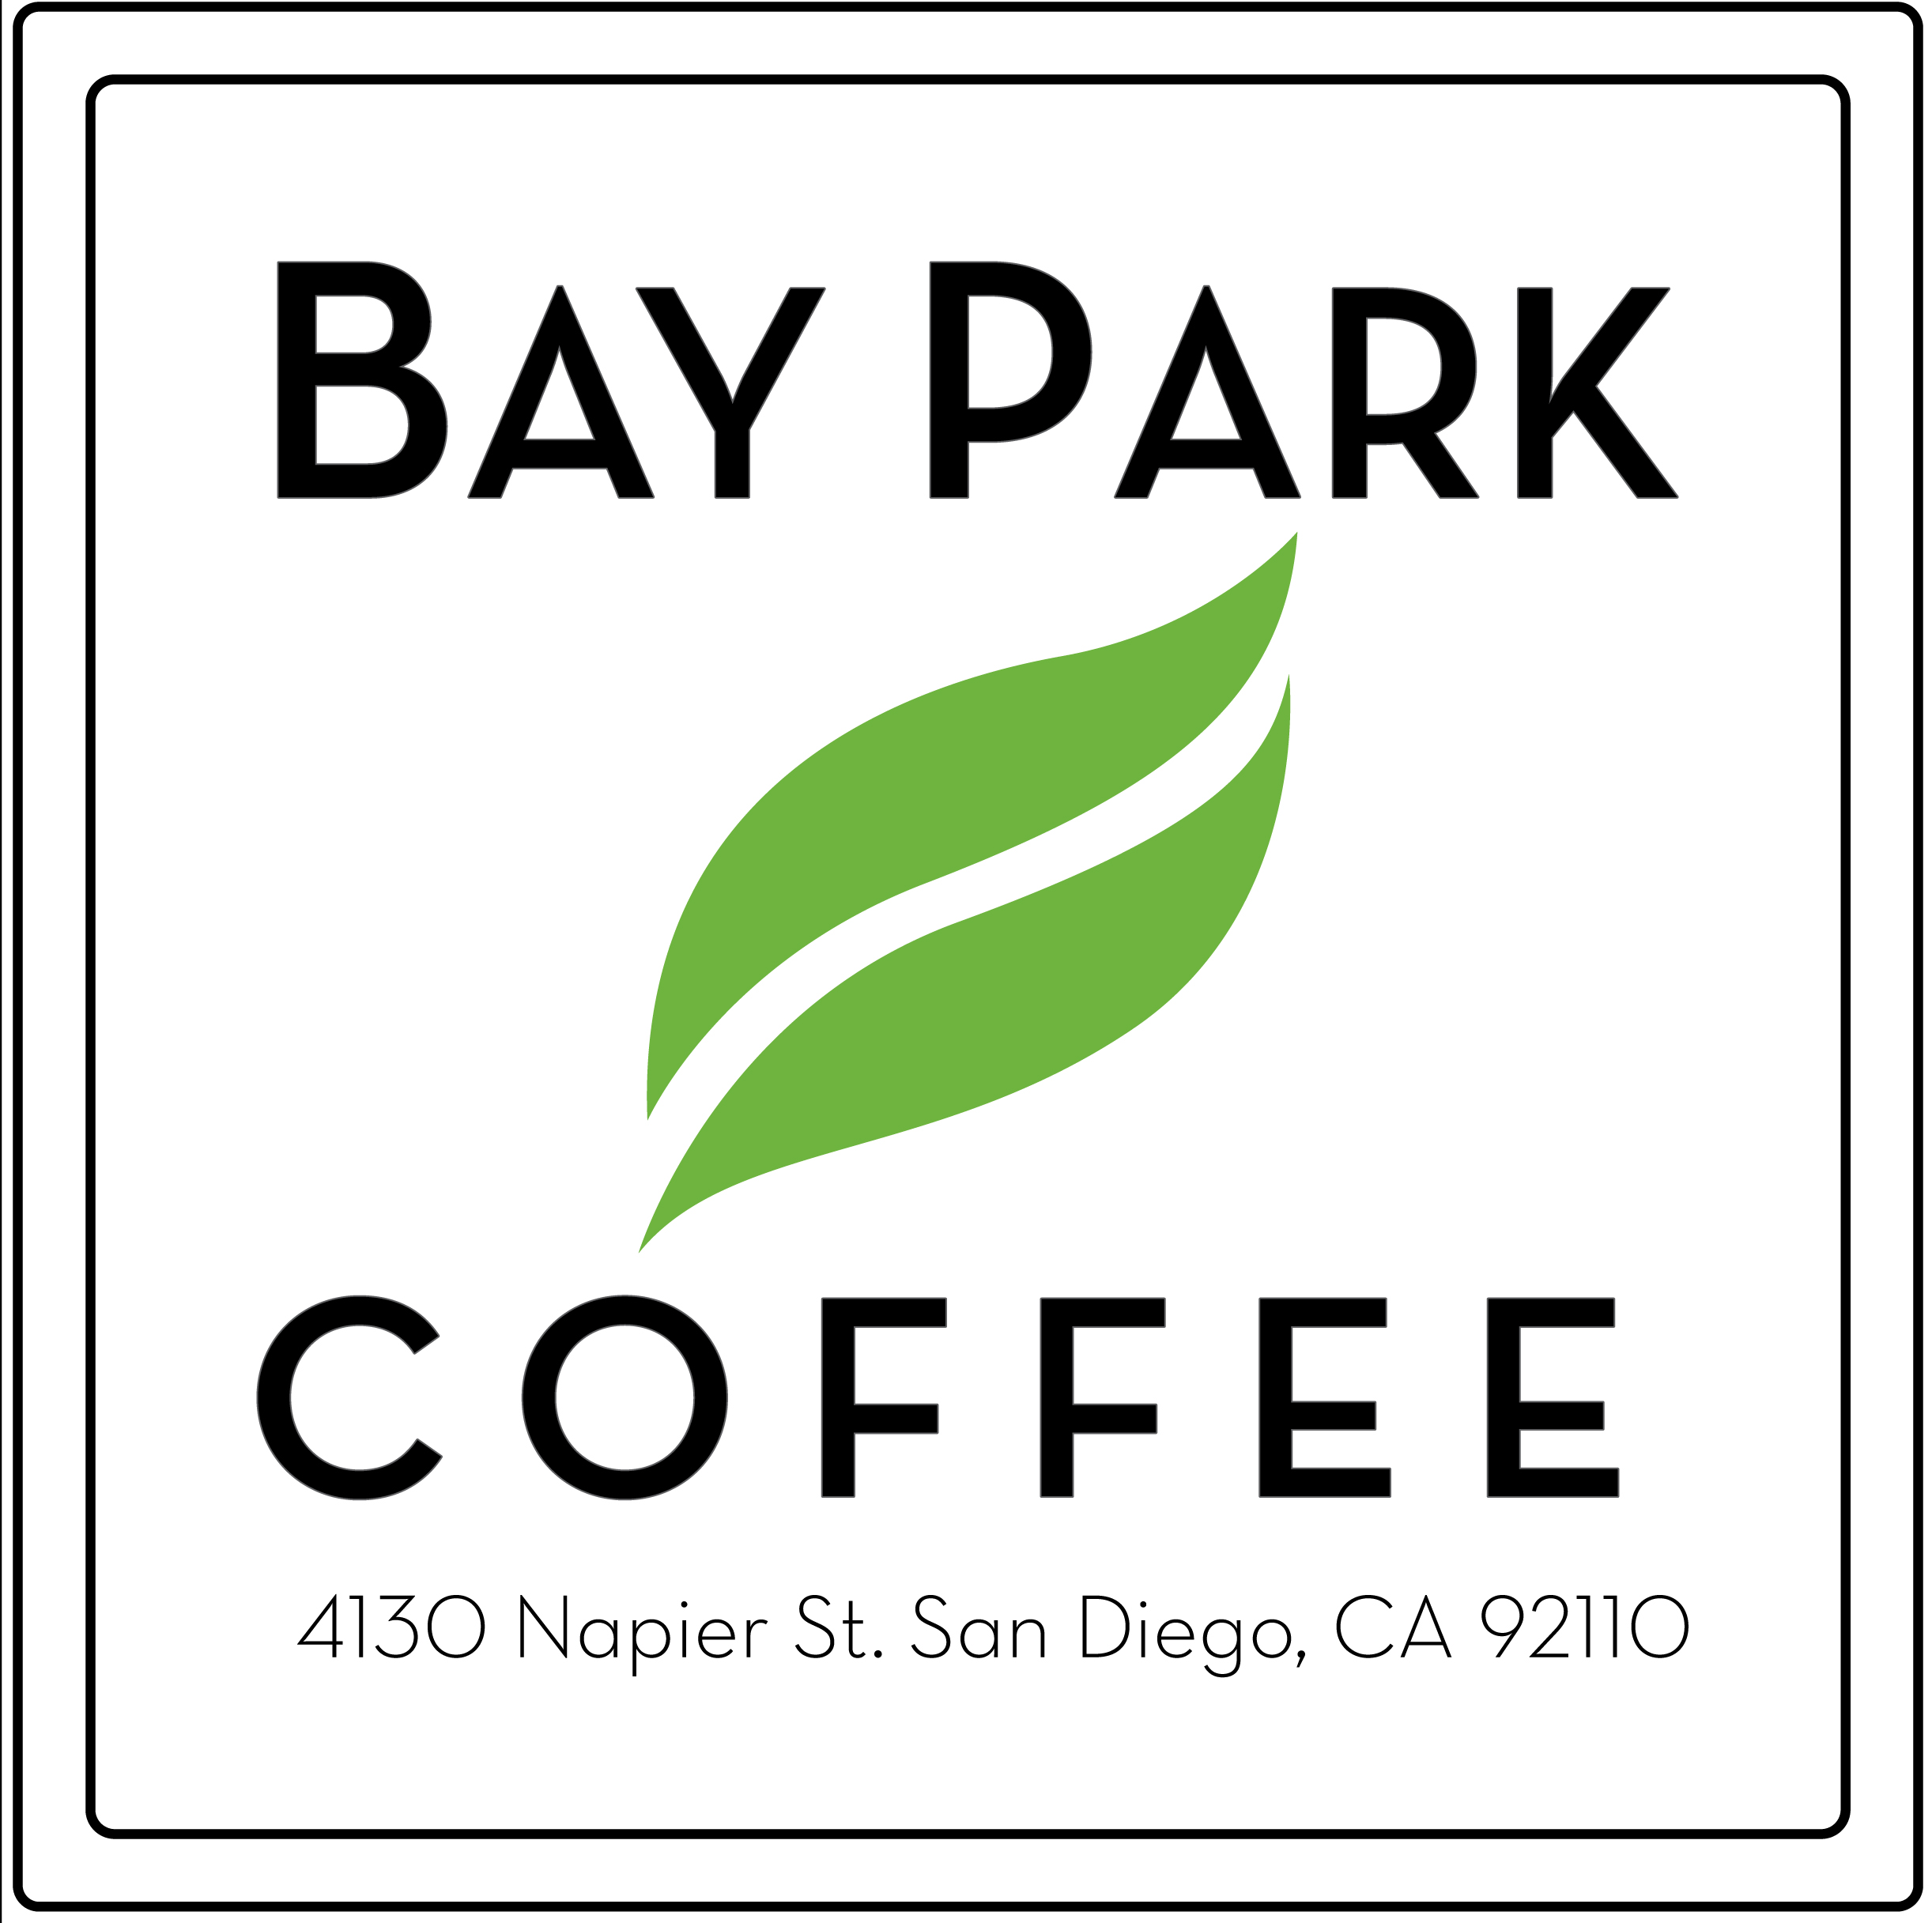 Bay Park Coffee logo